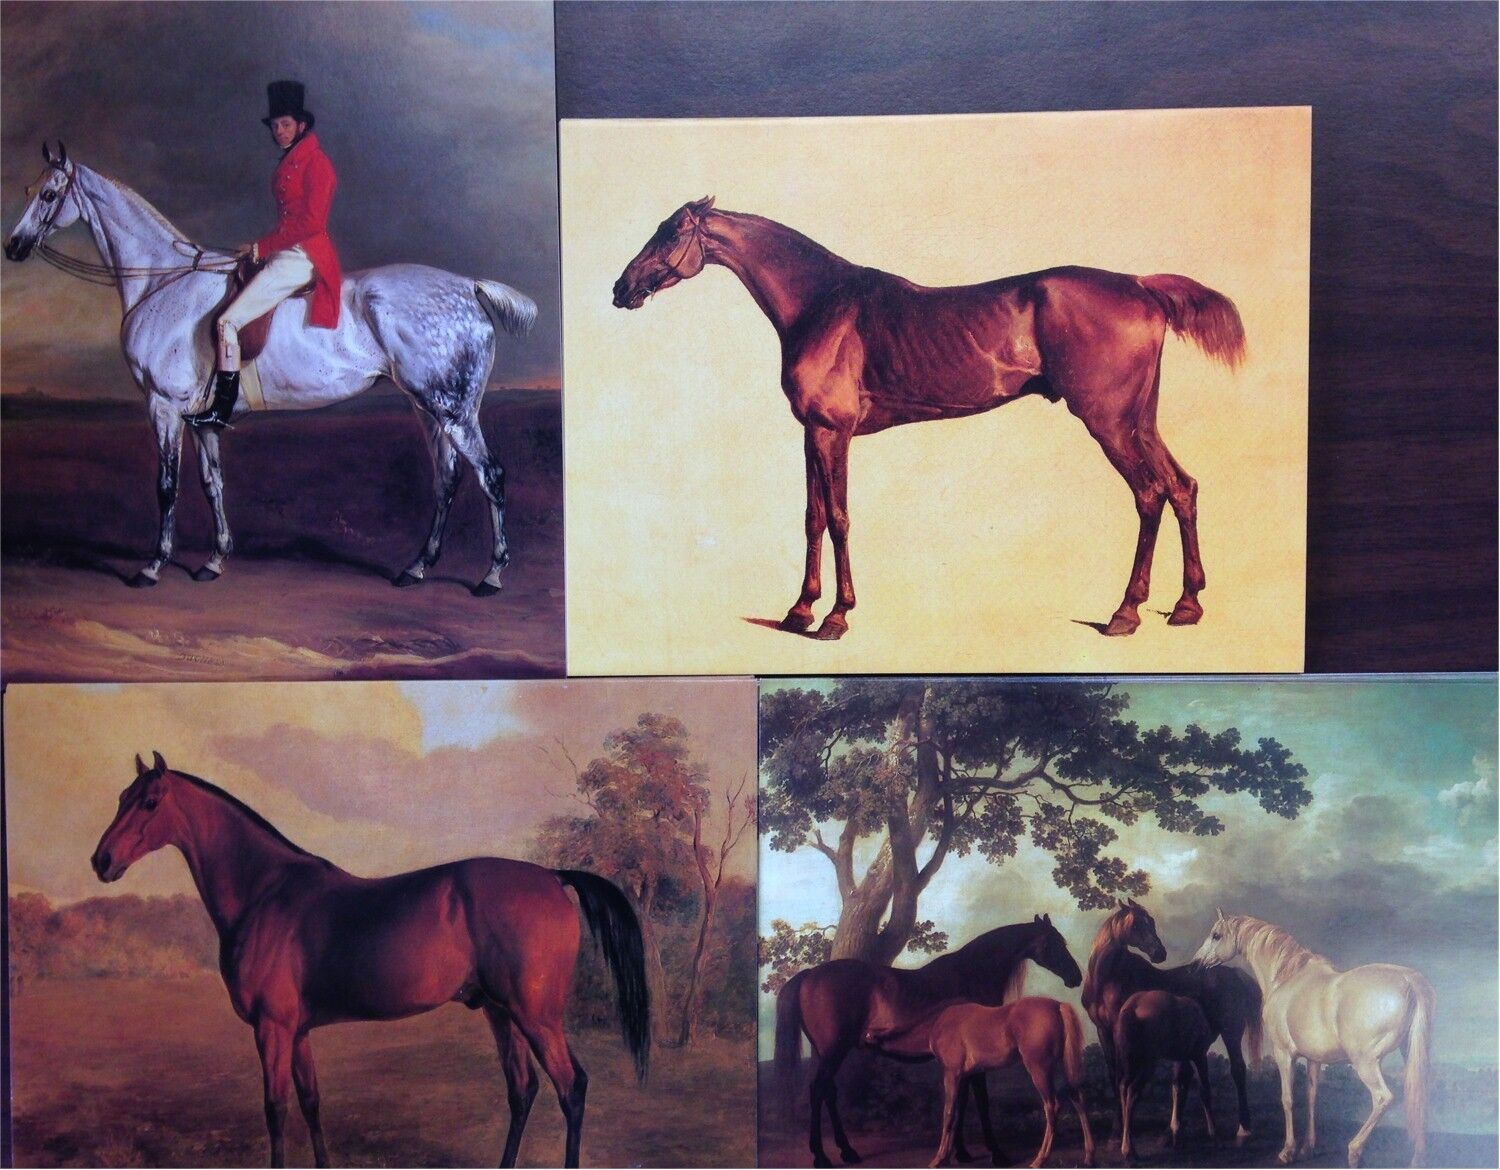 Horses 20 blank greeting cards w envelopes four fine art designs picture 1 of 2 m4hsunfo